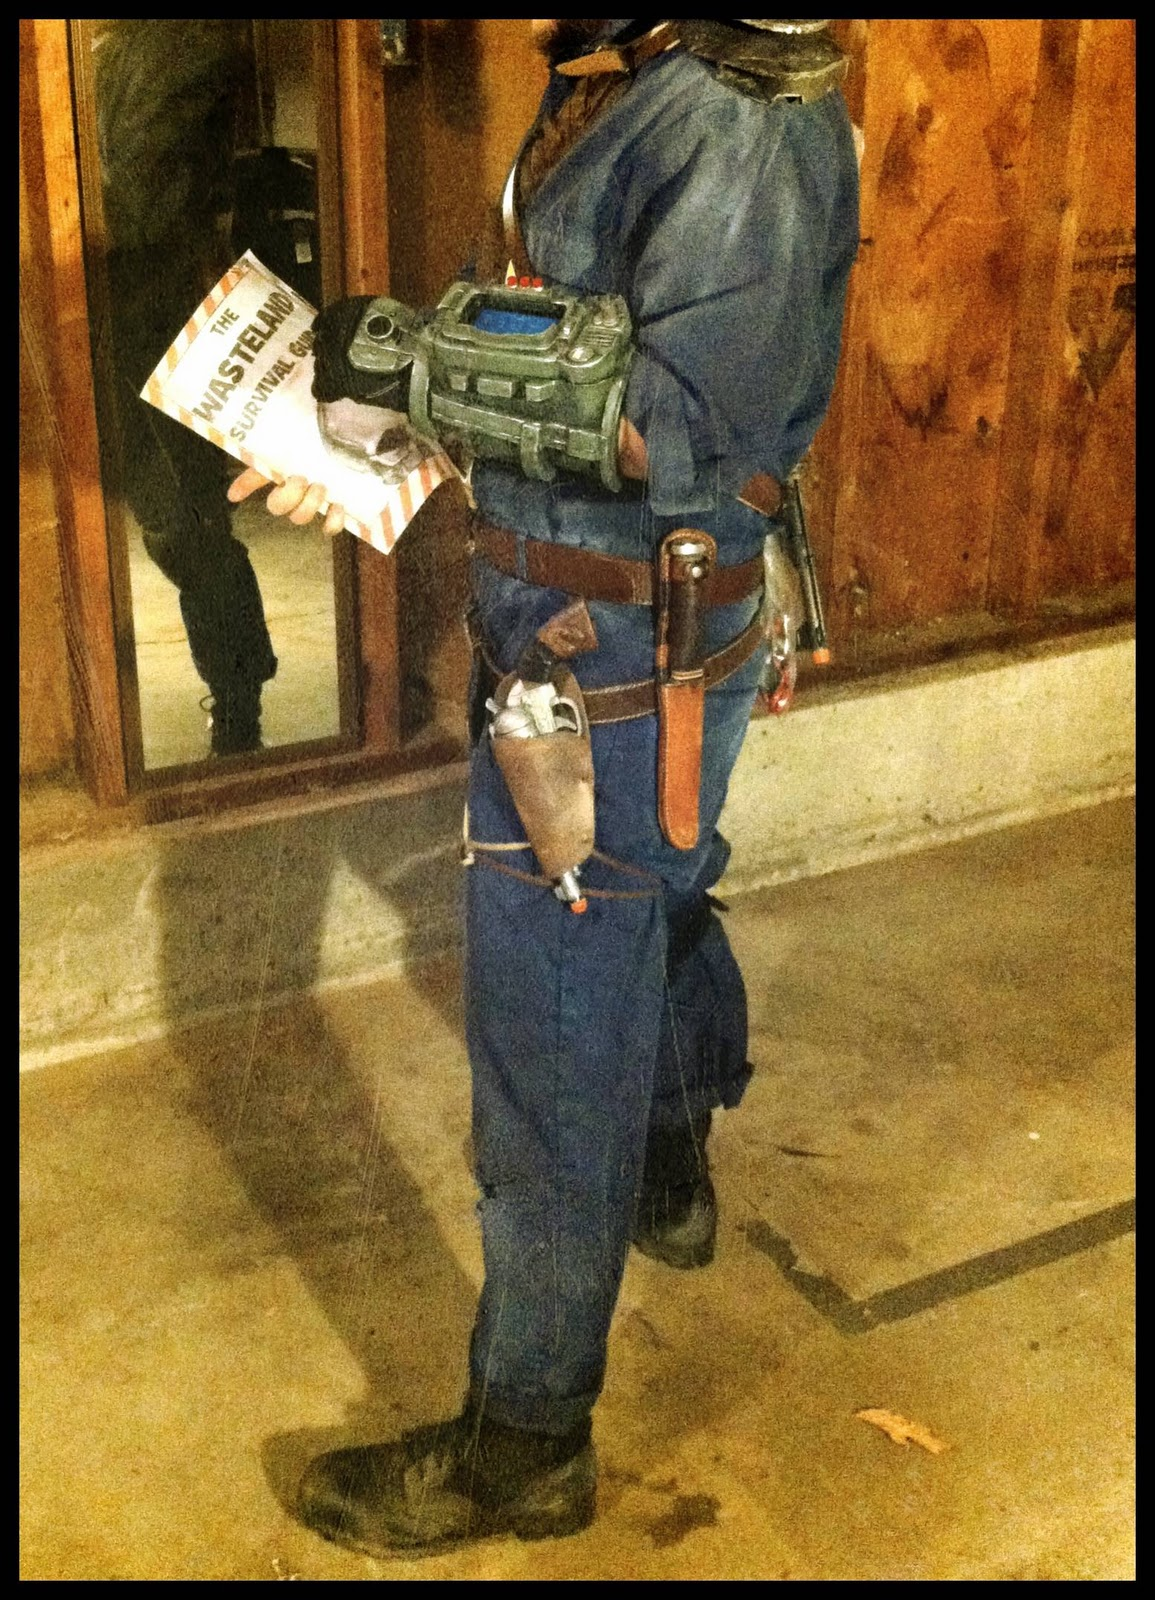 happy fallout o ween costume and homemade pip boy image number 6 of fallout halloween costumes